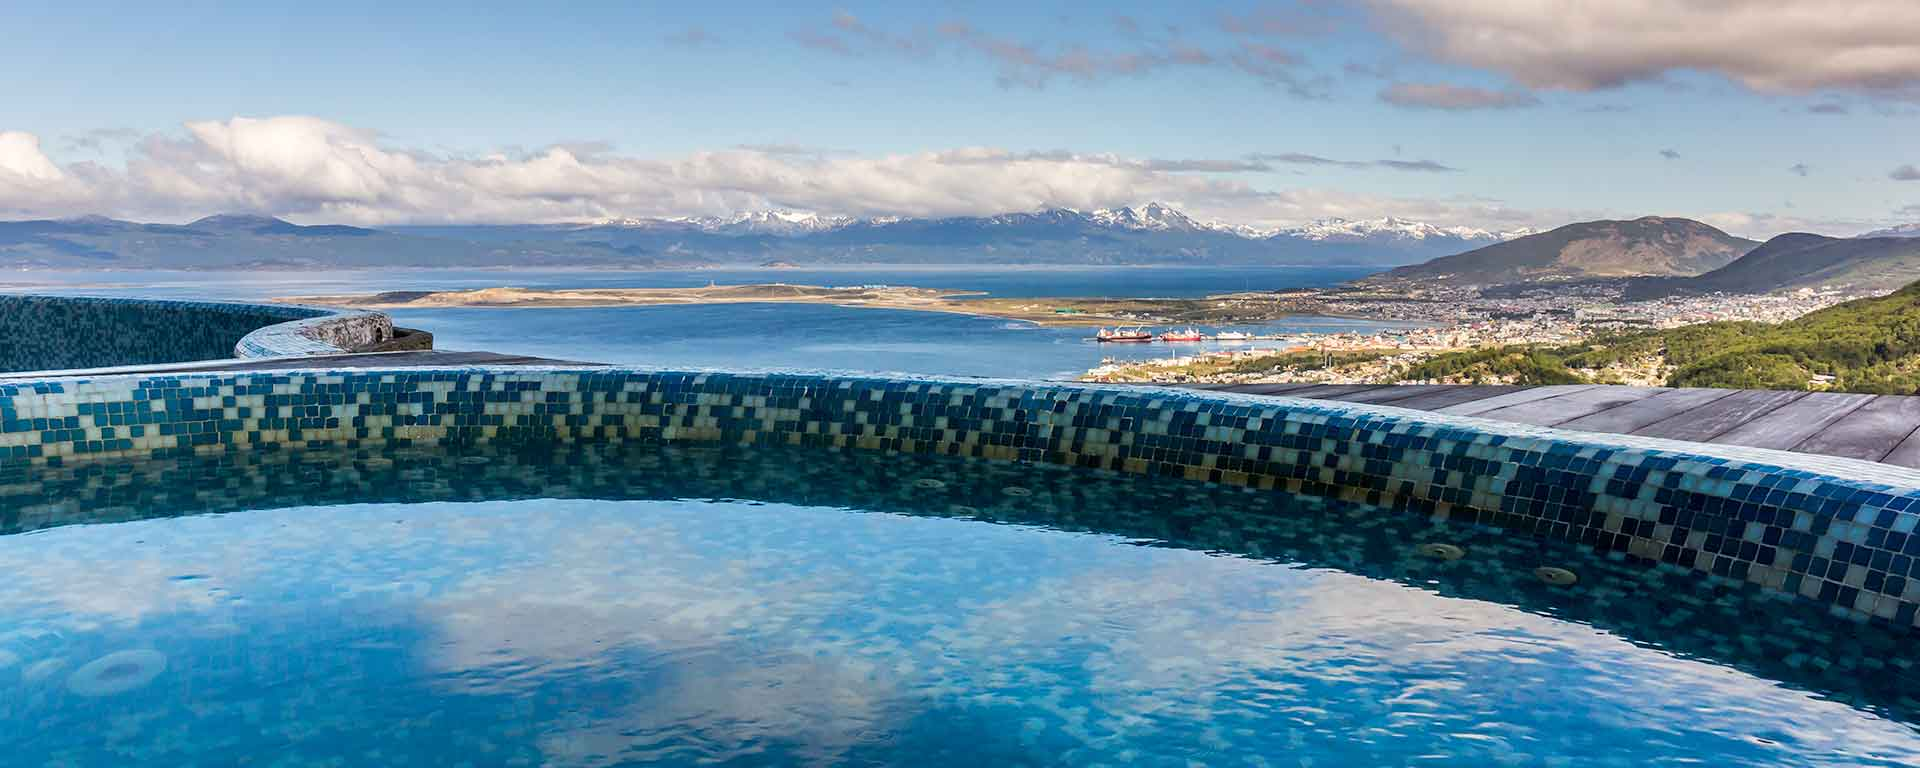 Arakur Ushuaia Resort & SPA, o hotel no fim do mundo